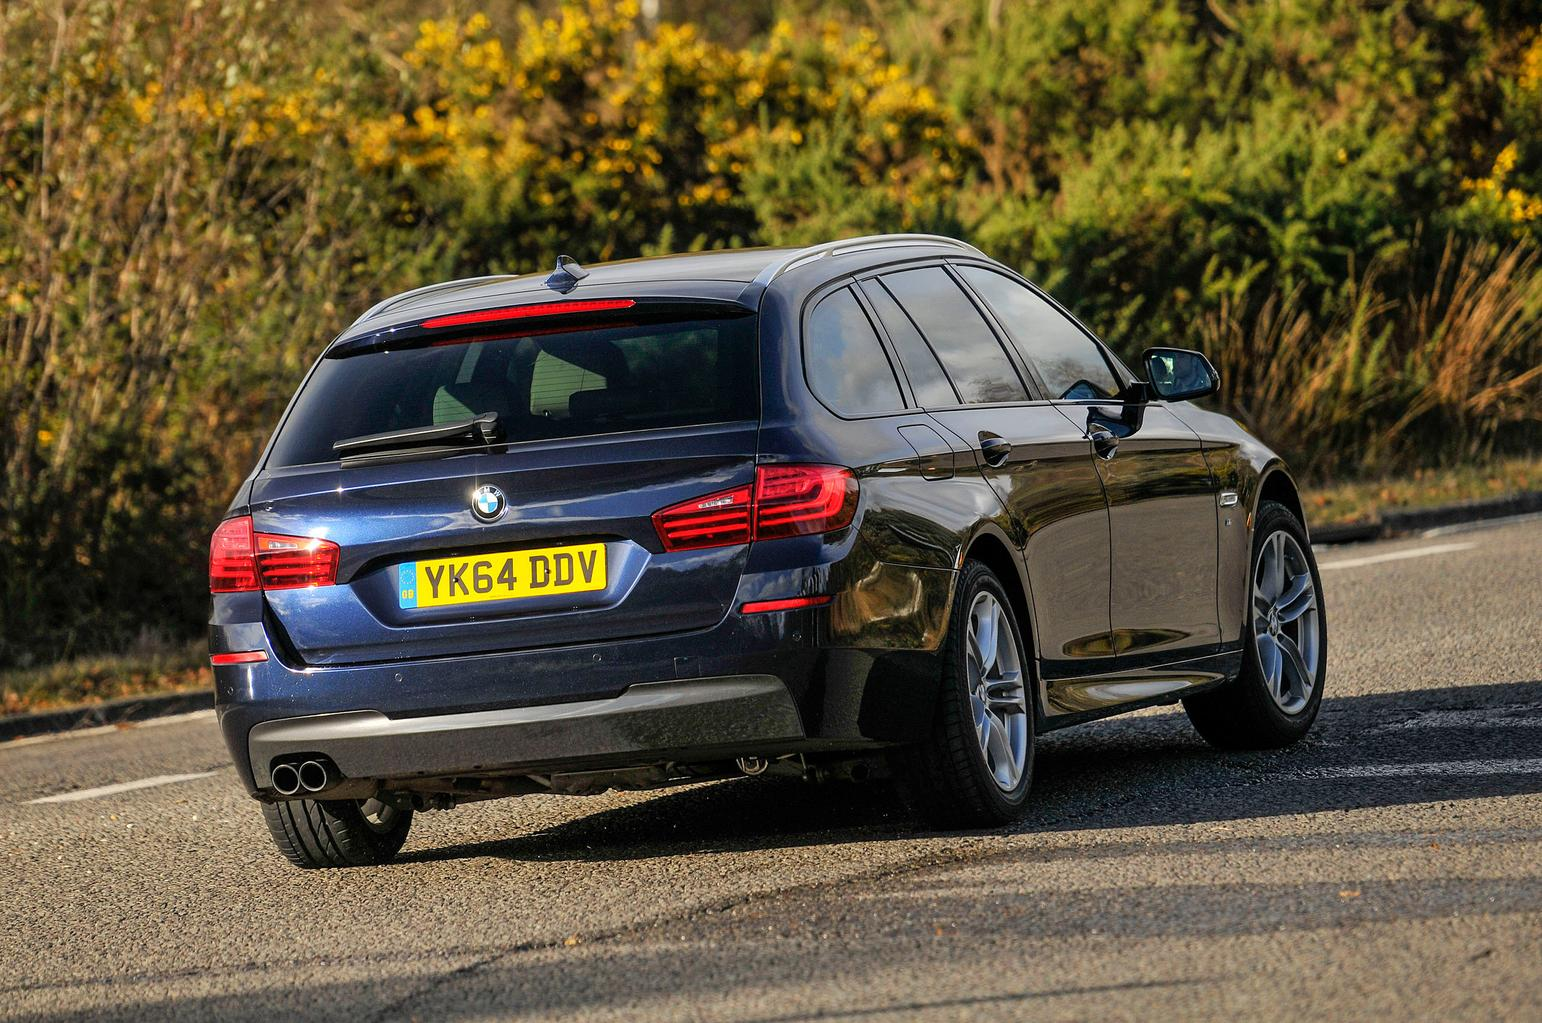 Deal of the Day: BMW 5 Series Touring